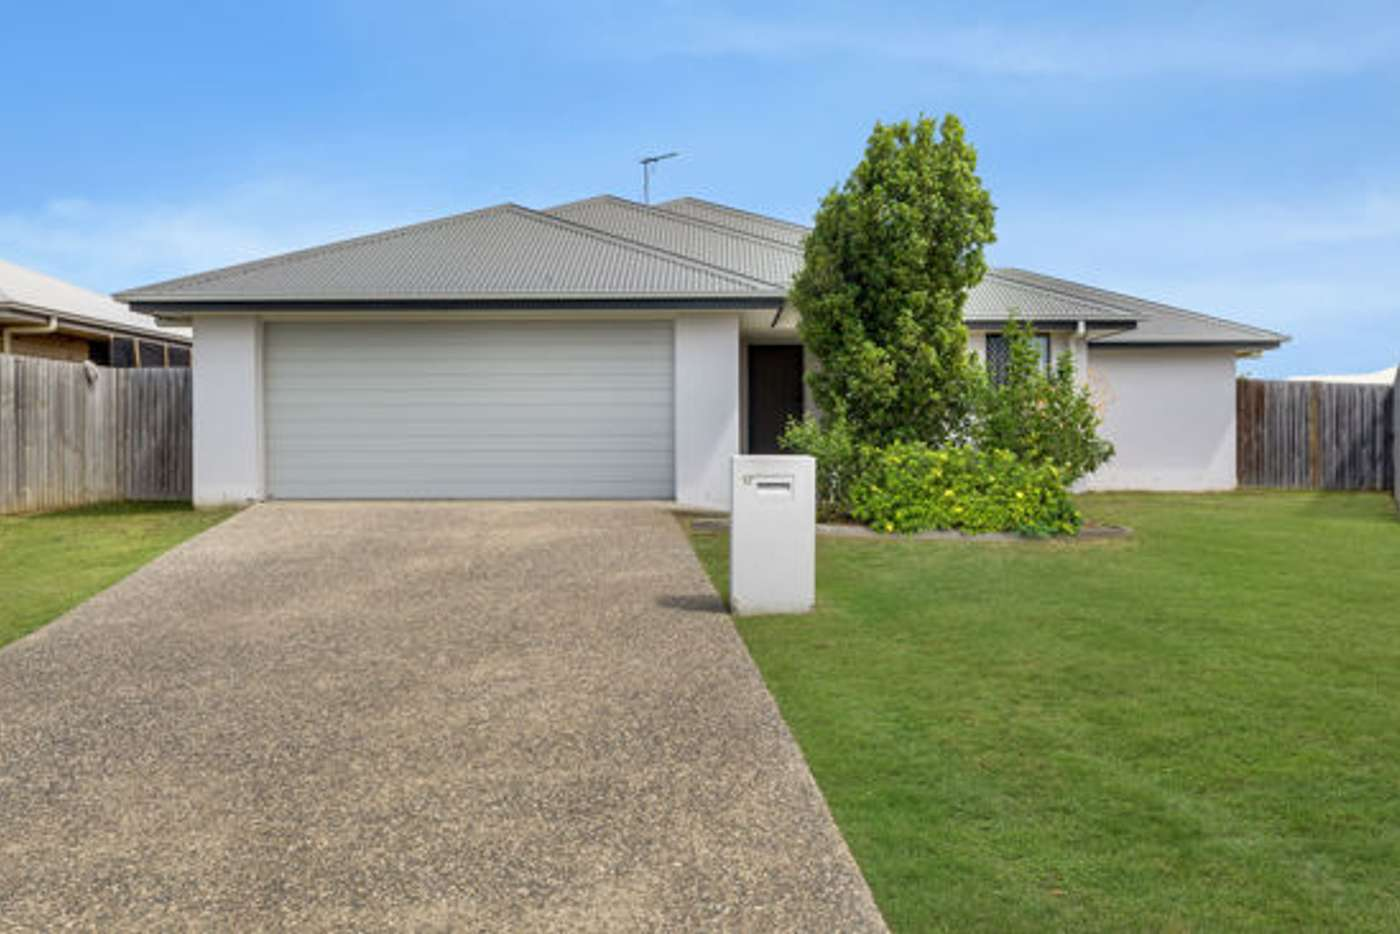 Main view of Homely house listing, 17 Parklane Crescent, Beaconsfield QLD 4740